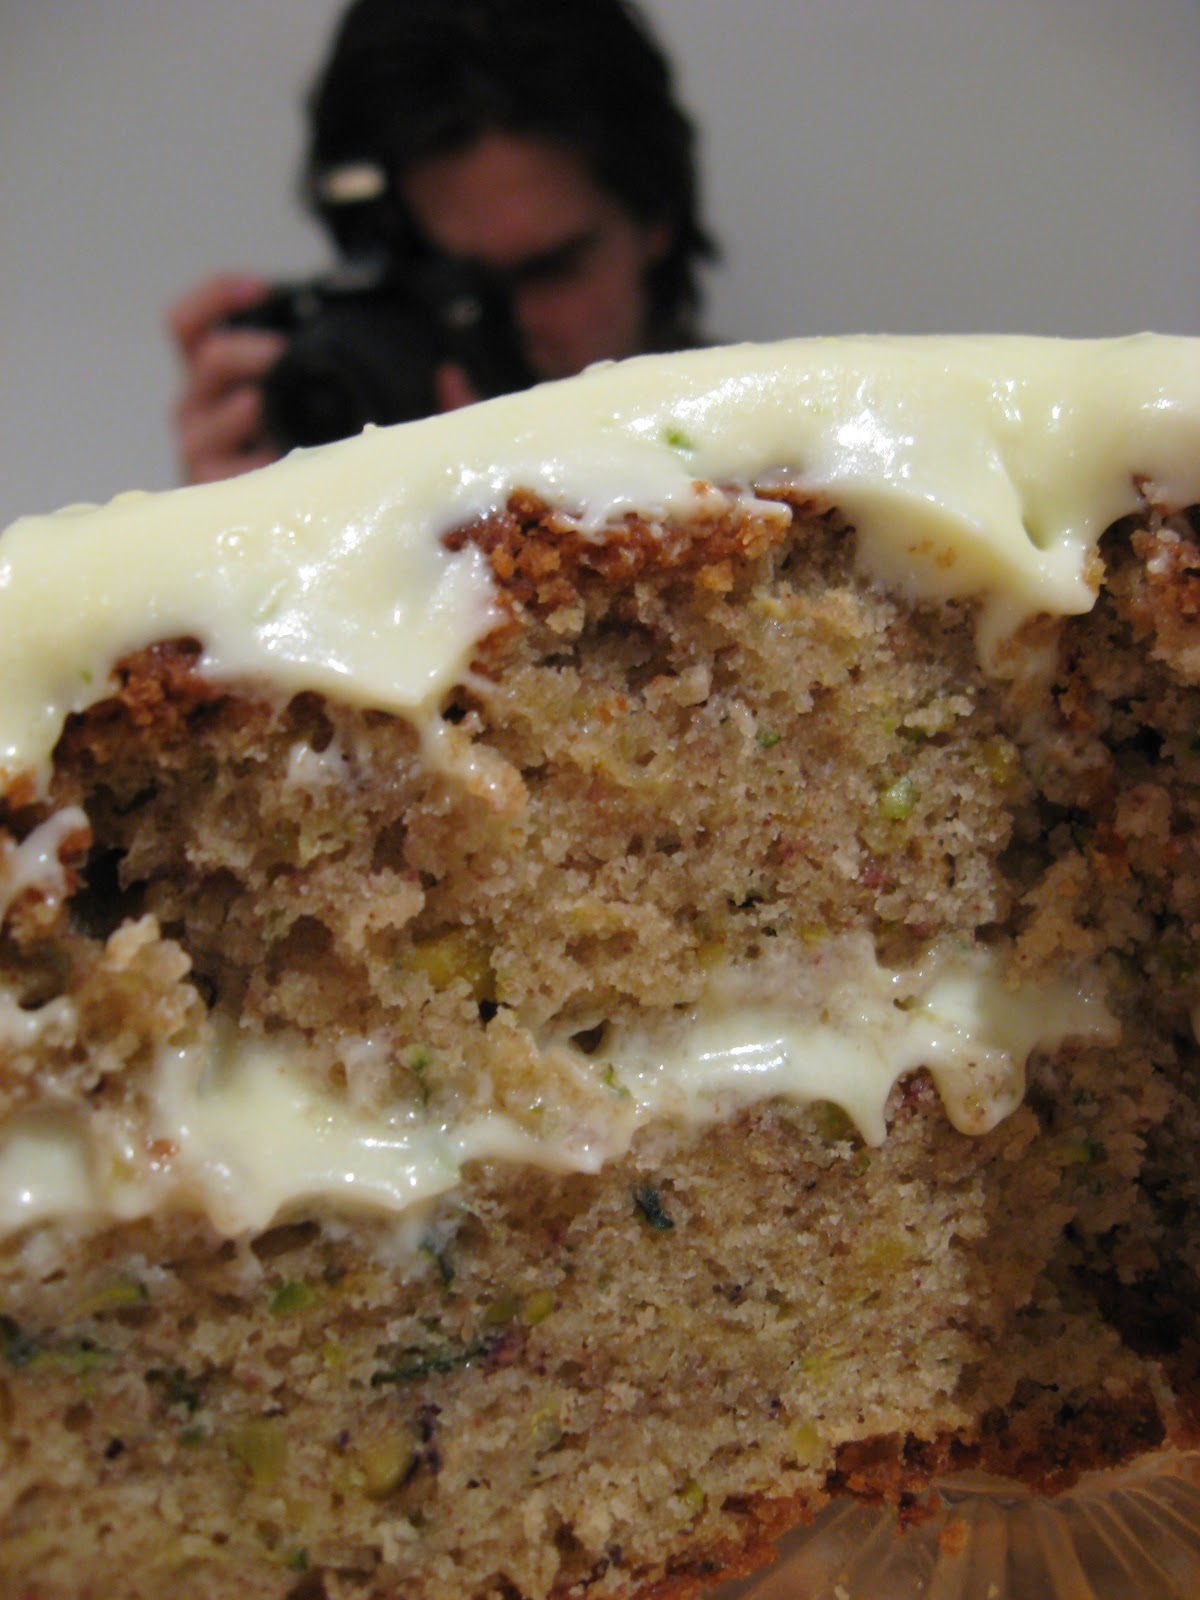 Pin Zucchini cake picture to pinterest.